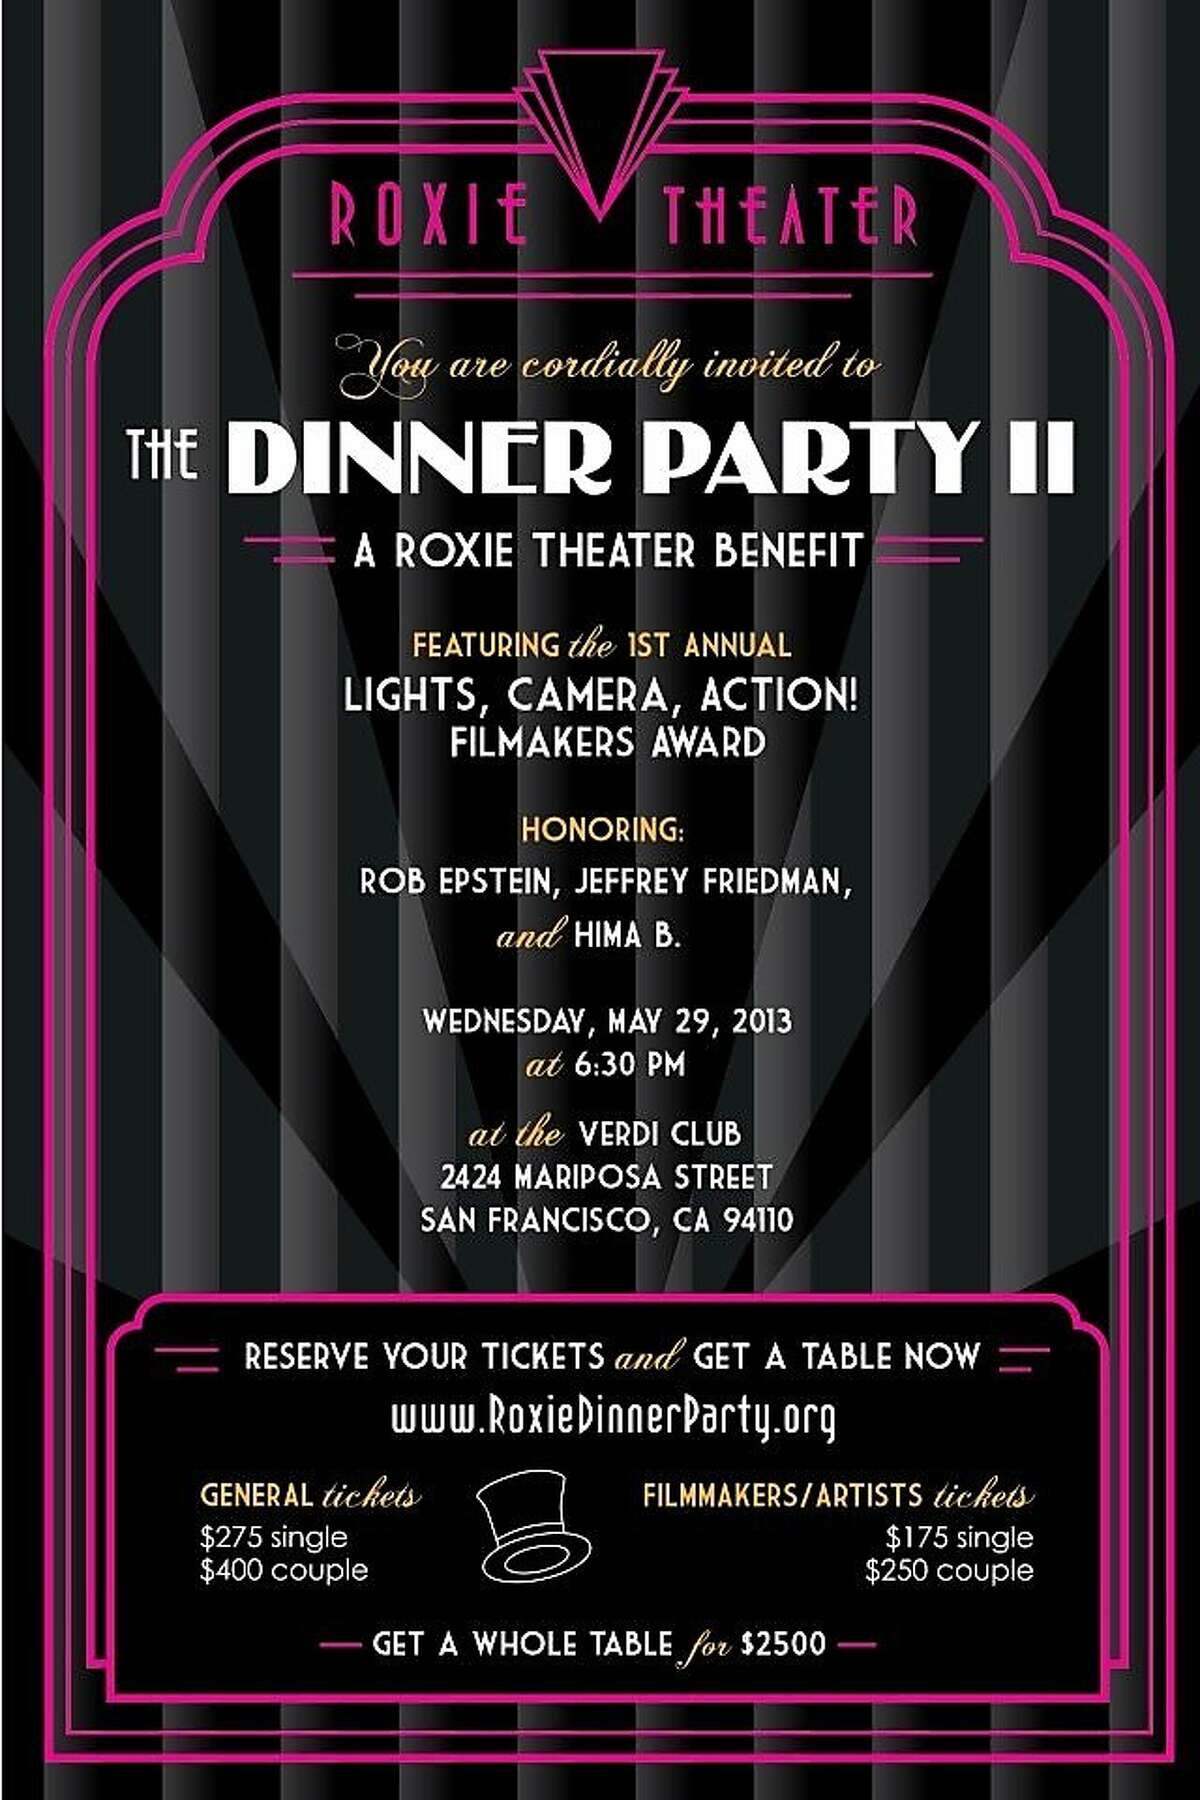 The Roxie Theater holds its second dinner party benefit May 29 at the Verdi Clu in San Francisco.